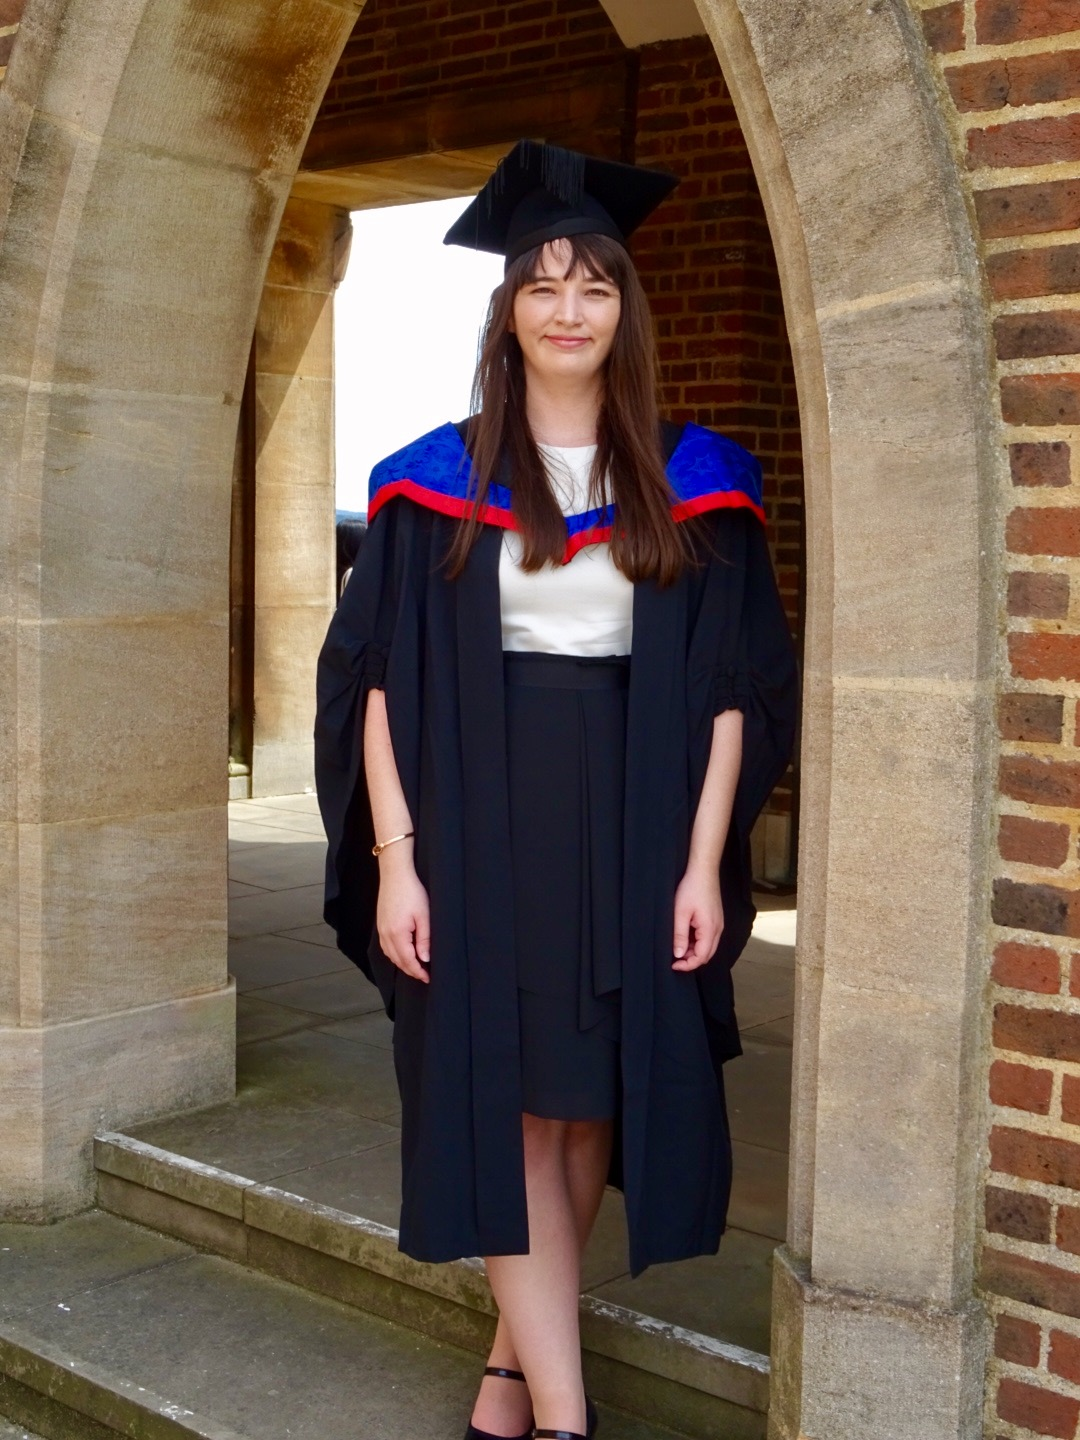 Rosie the author of this blog. stands under an archway at the University of Surrey in her graduation gown.